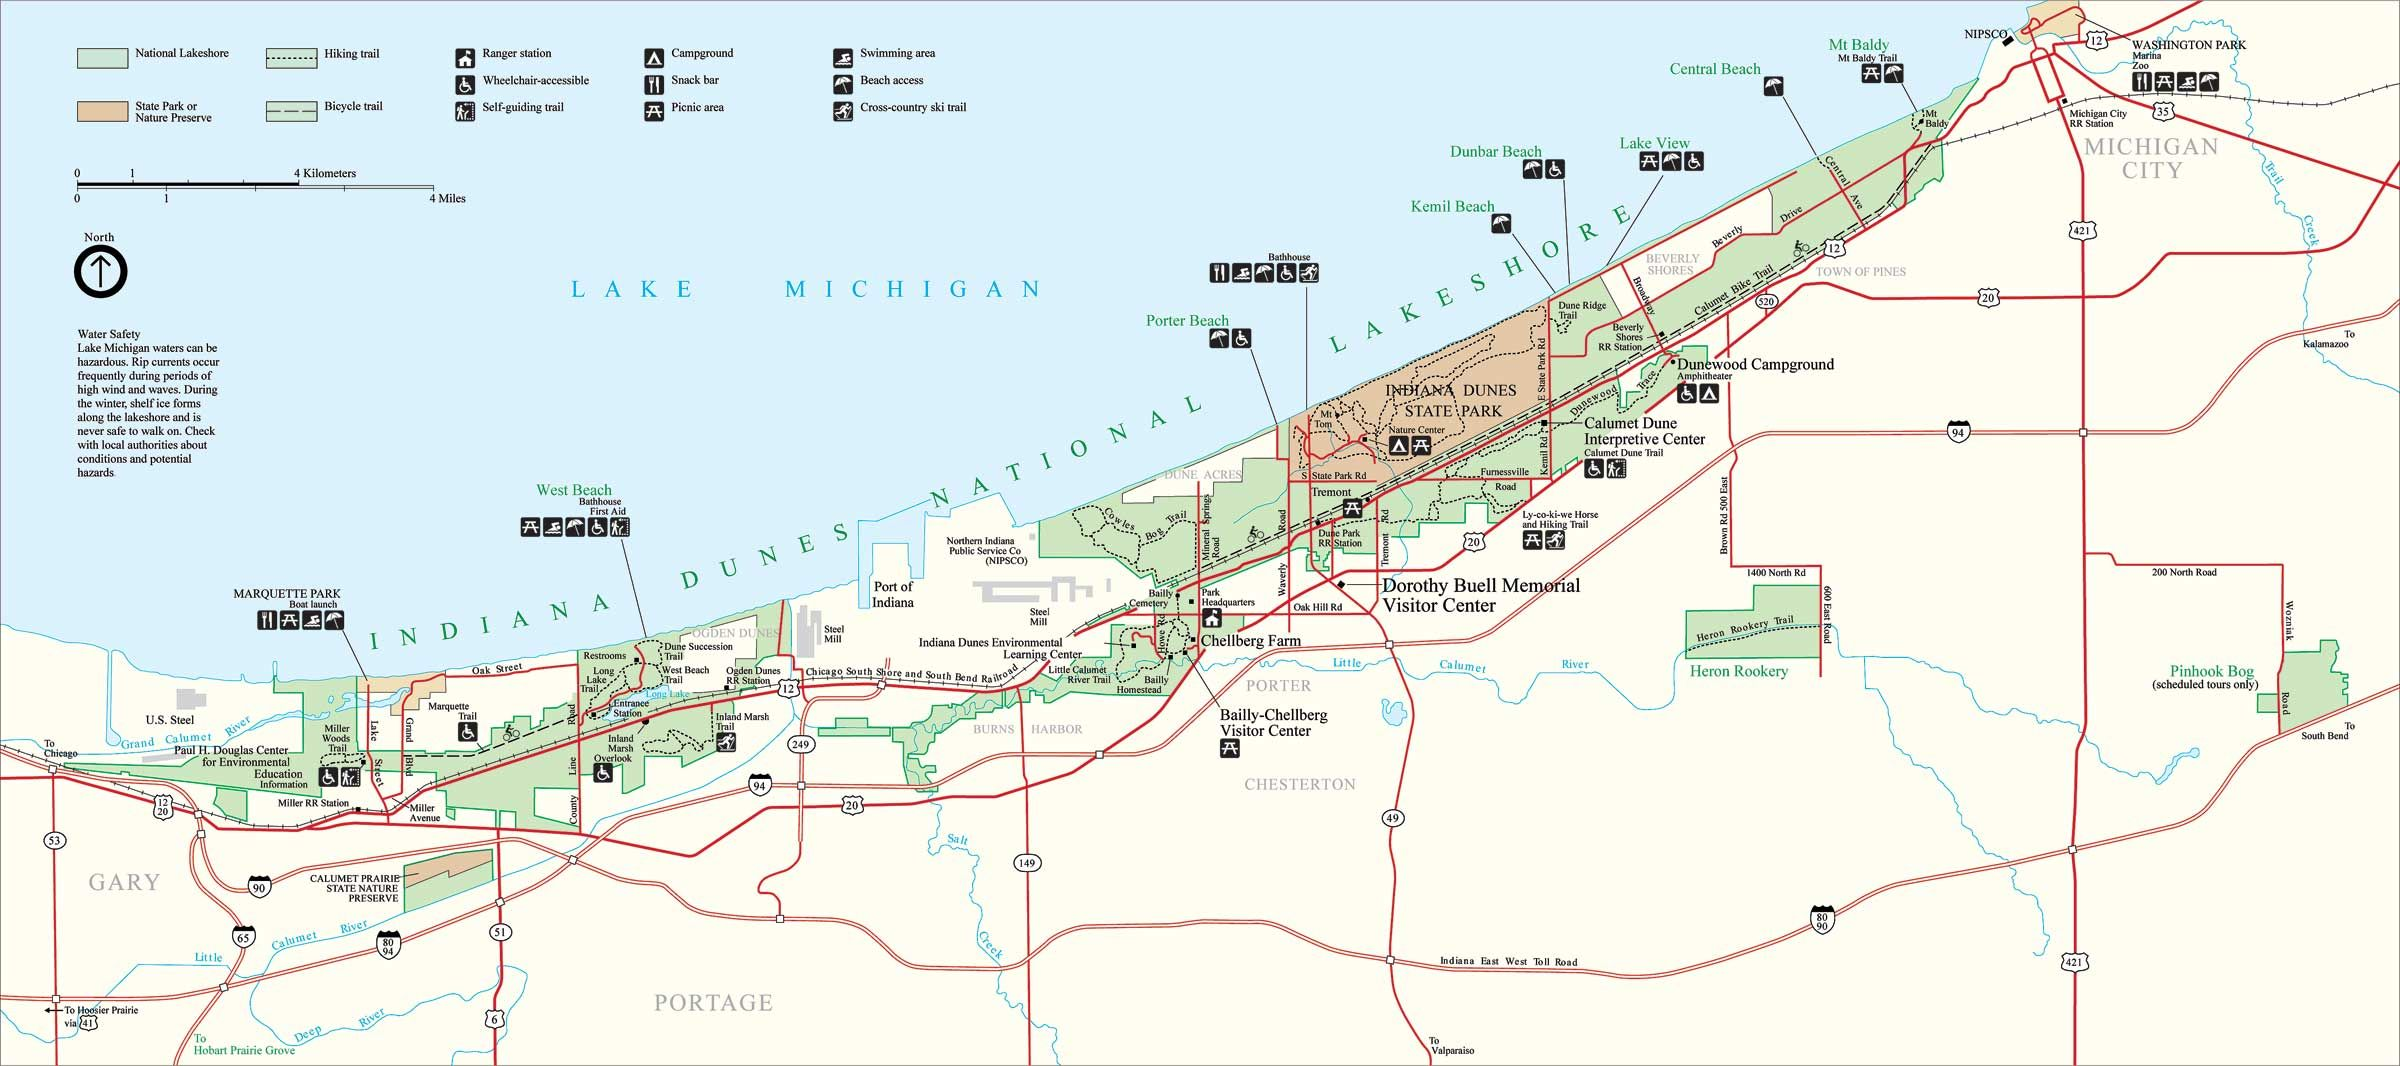 Indiana Dunes National Park Map - Michigan City Indiana USA ...